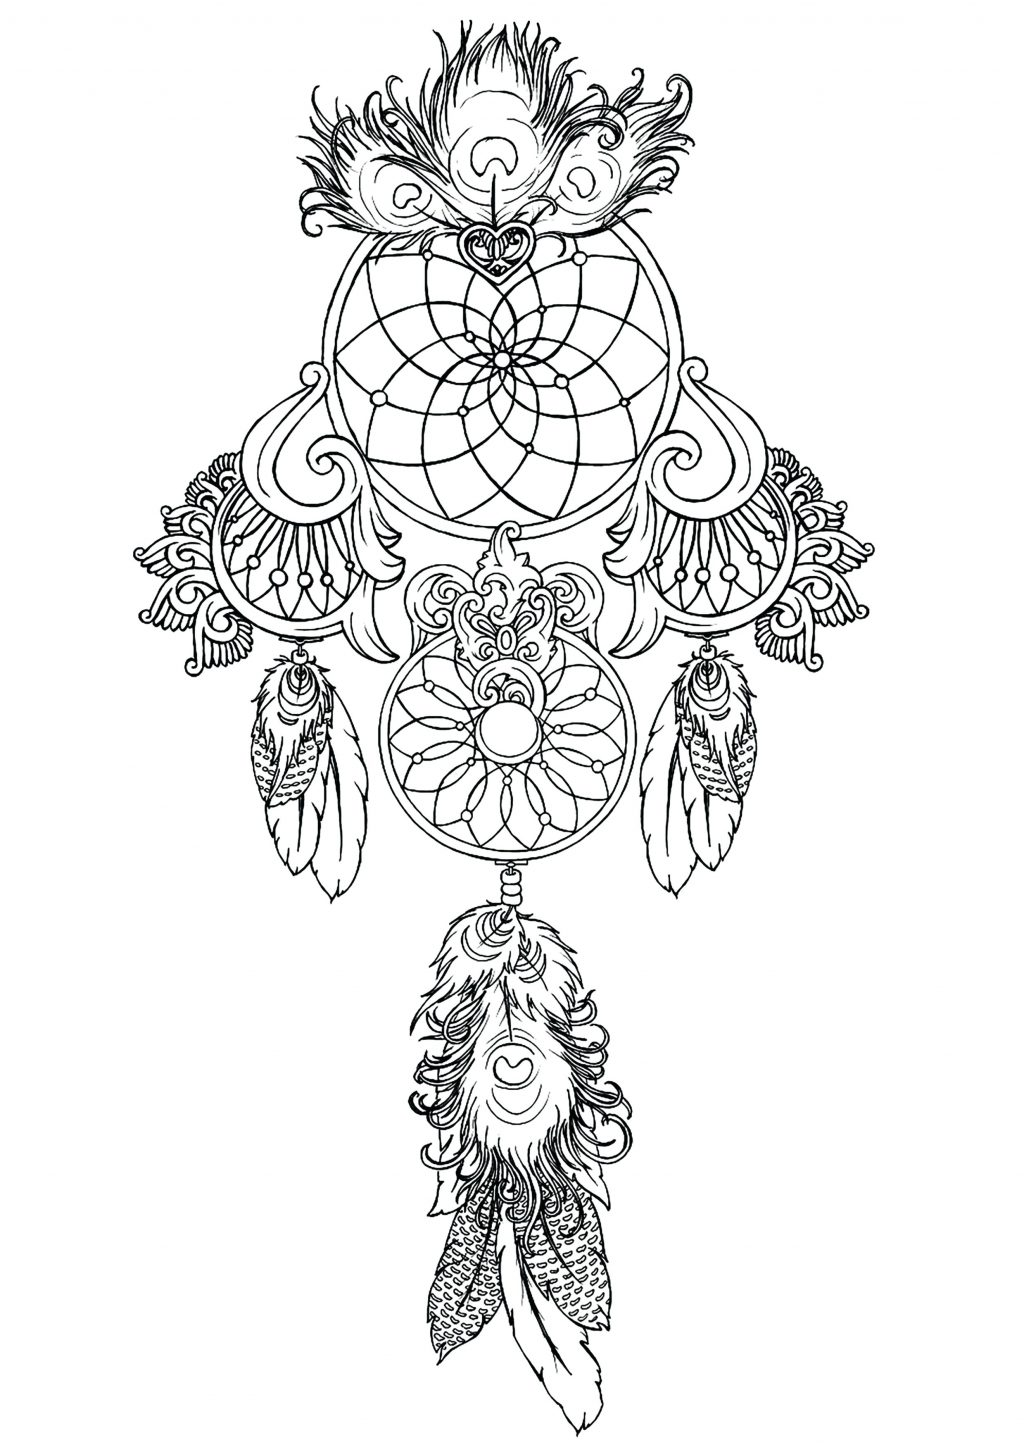 1024x1452 Coloring Page Dreamcatcher Coloring Pages To Print Free Dream